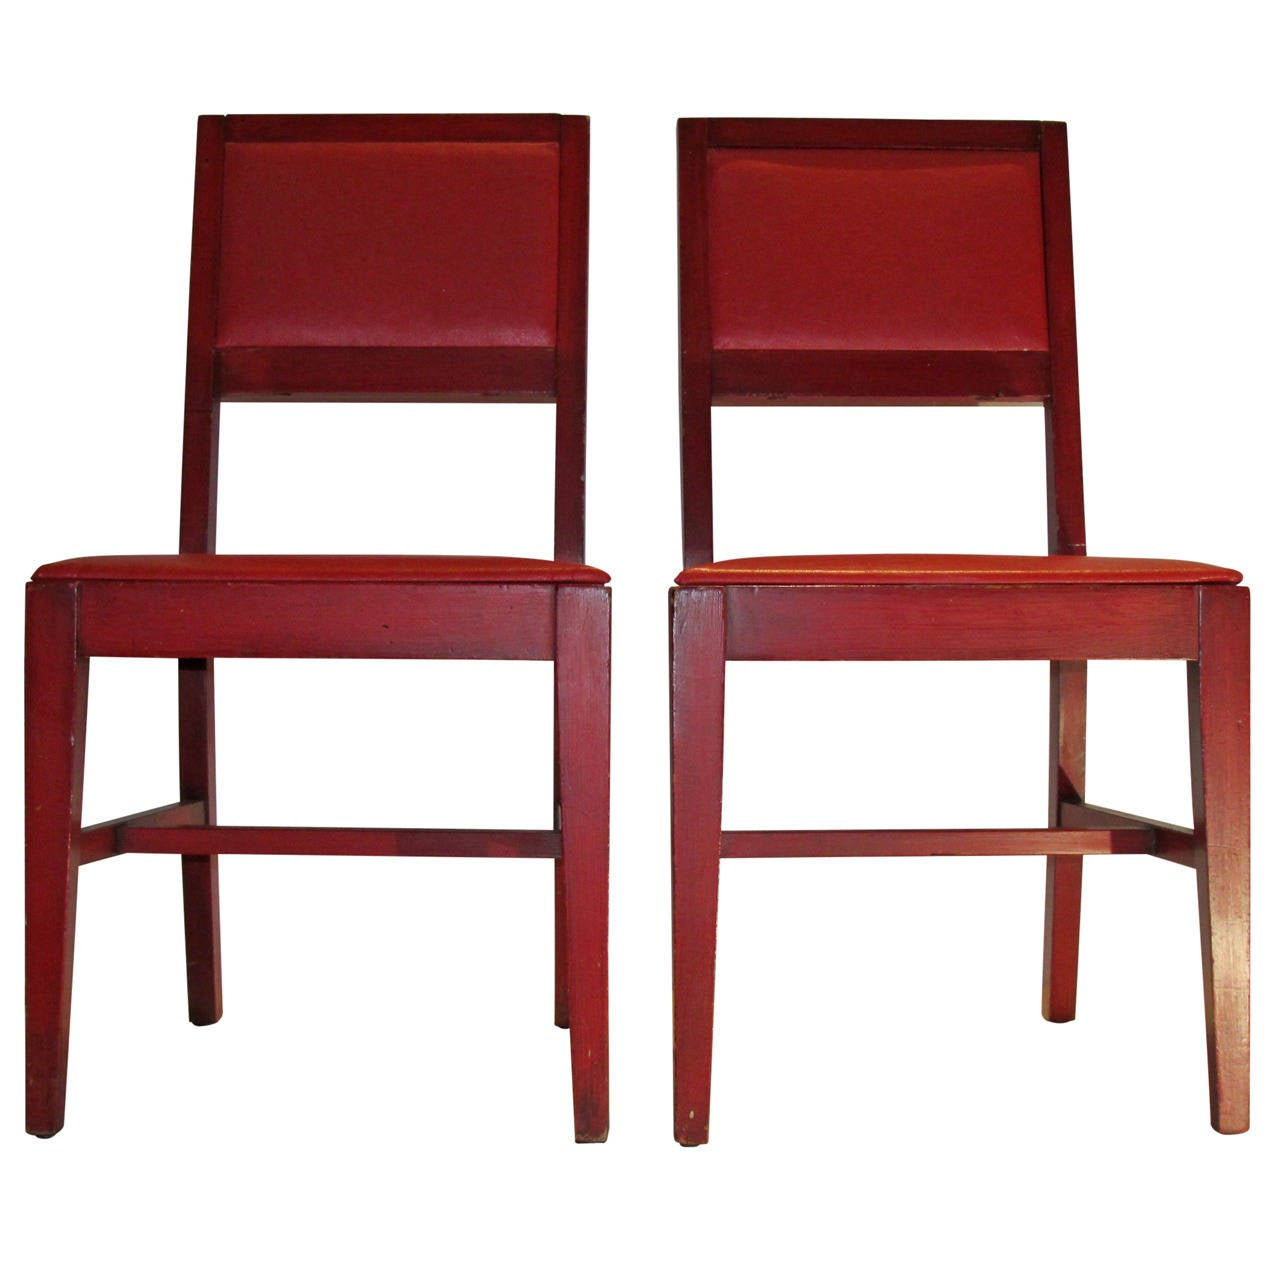 chairs at marshalls bar stool ikea 1940 39s modernist red from marshall fields 1stdibs